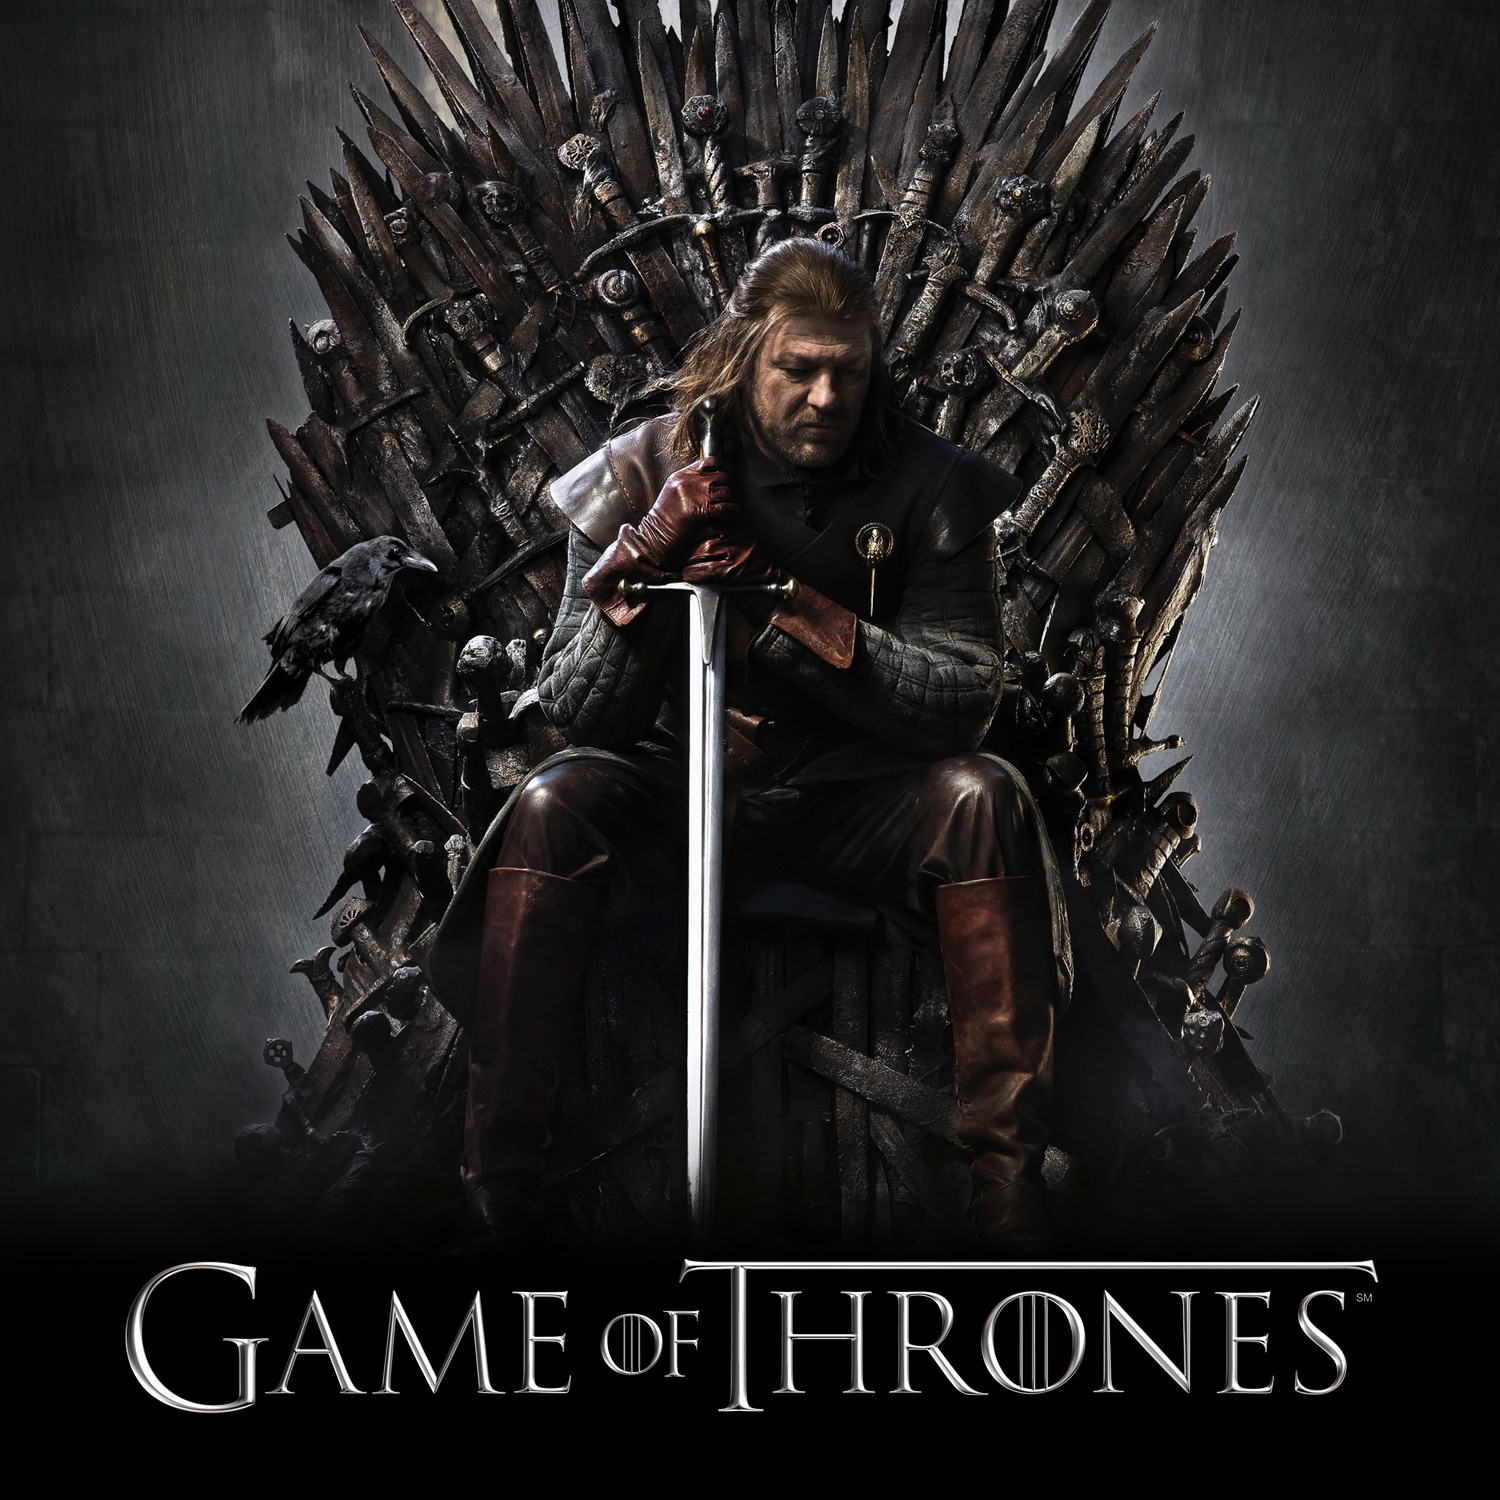 Game of Thrones Sottotitoli Stagione 1 sub ita 720p